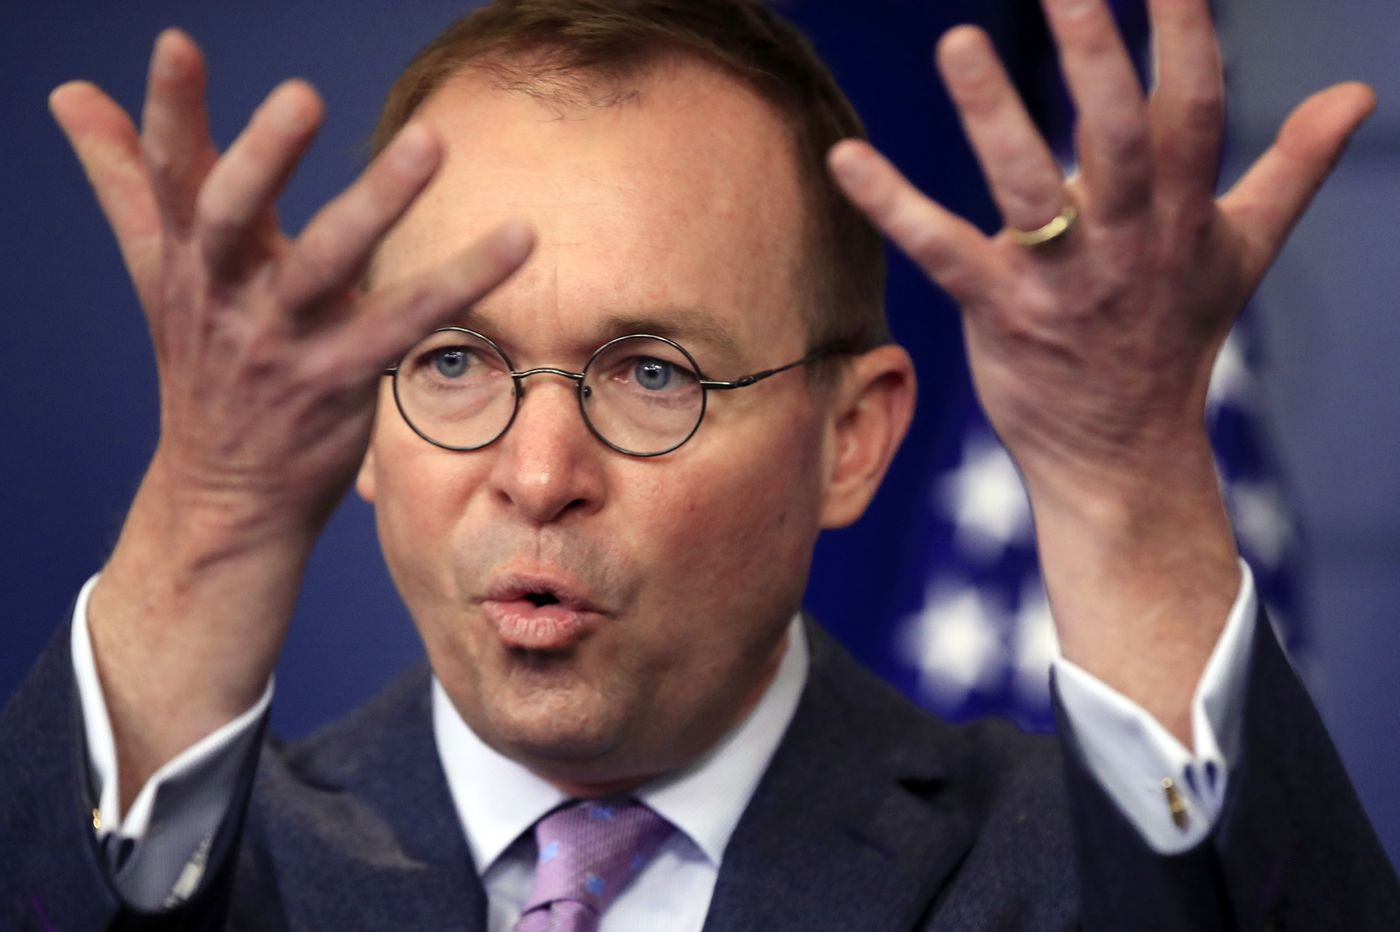 Trump picks Mulvaney to be next chief of staff